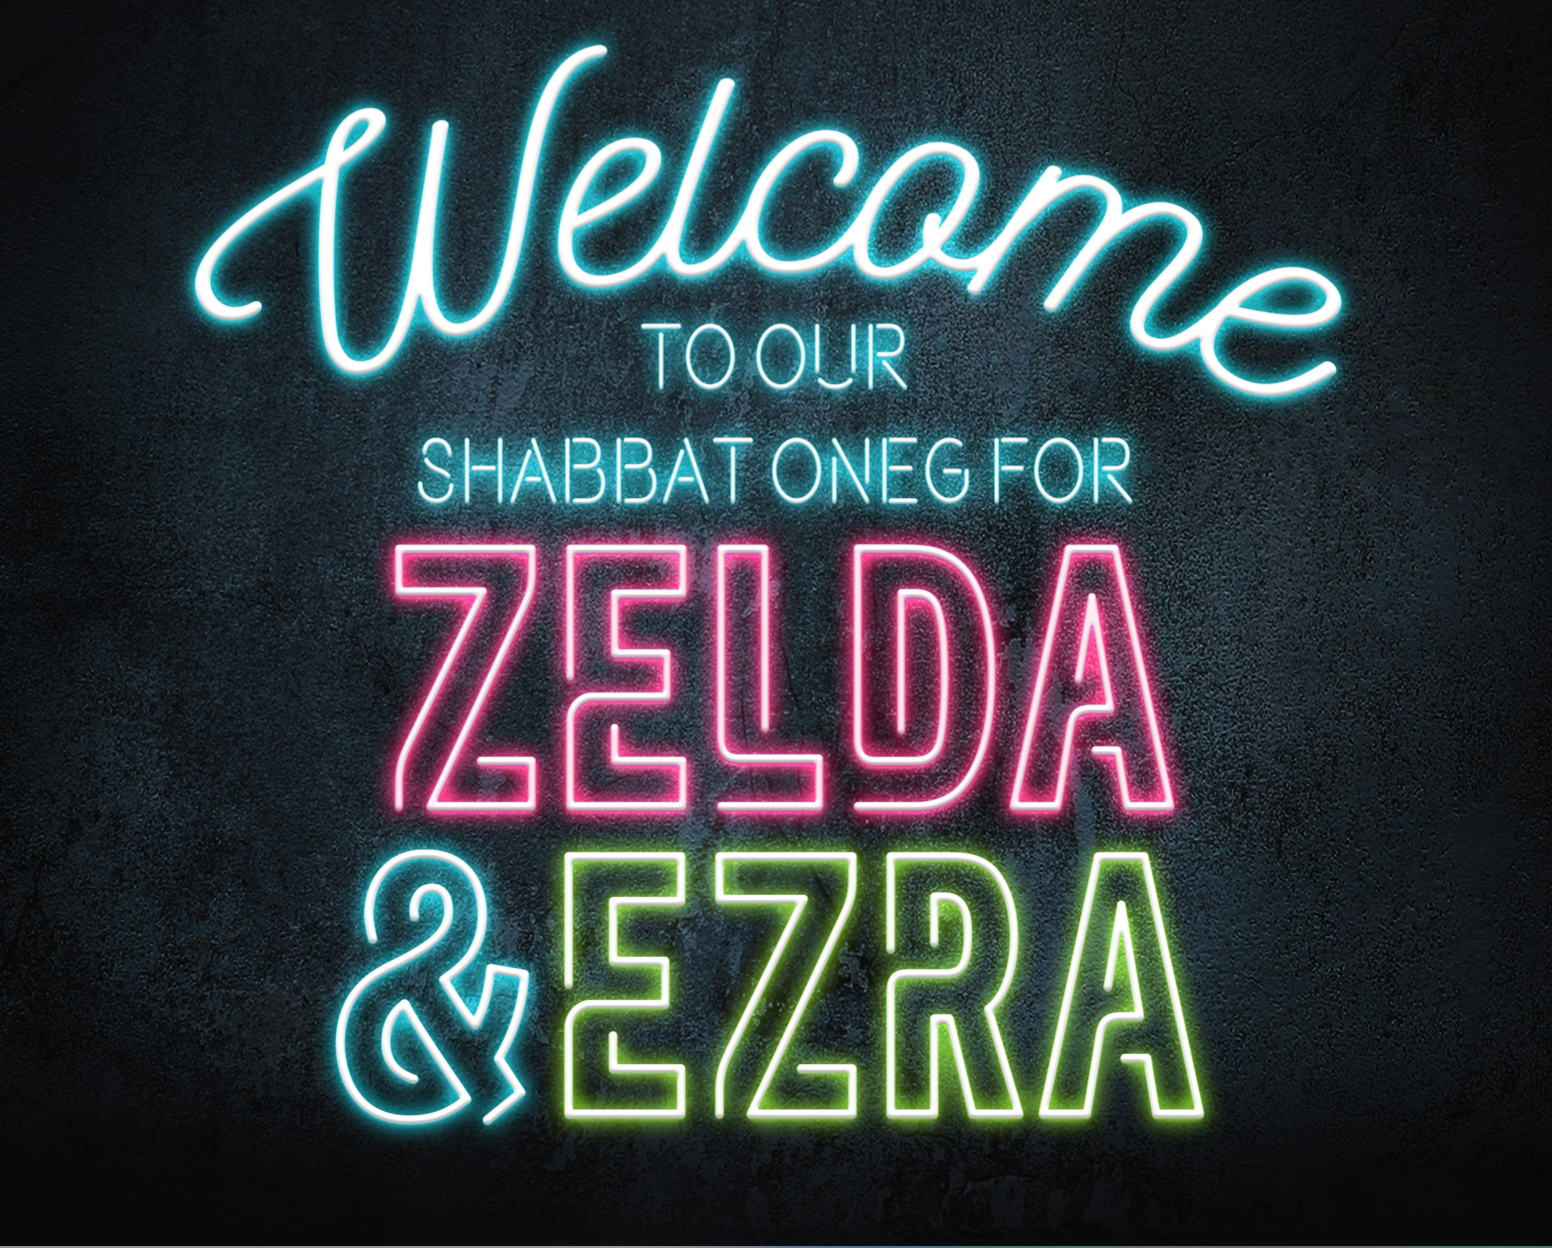 Ezra & Zelda - Welcome Poster